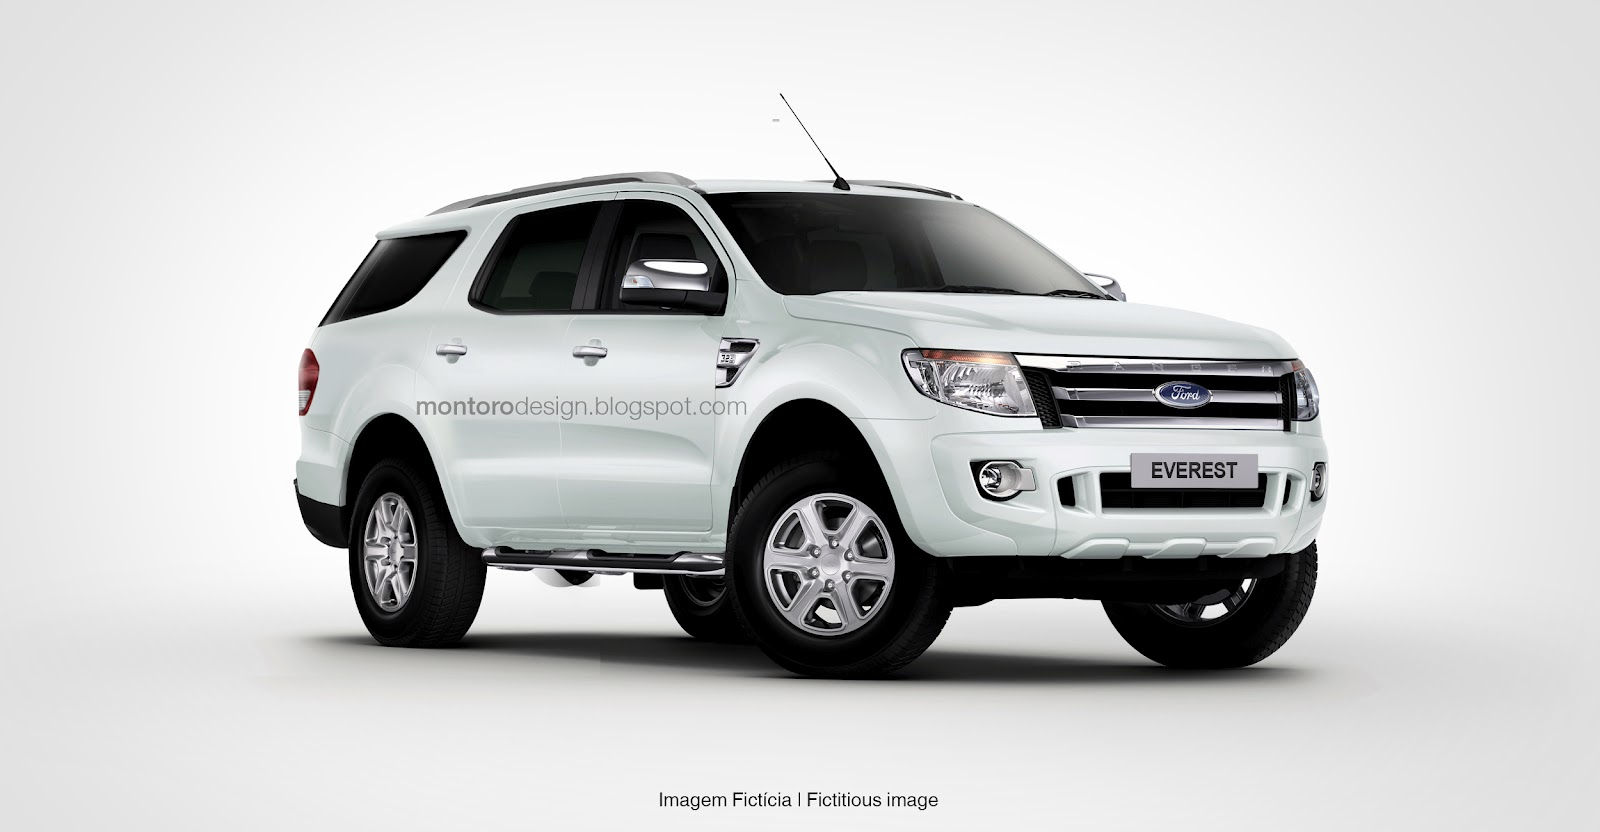 Ford everest photo - 4